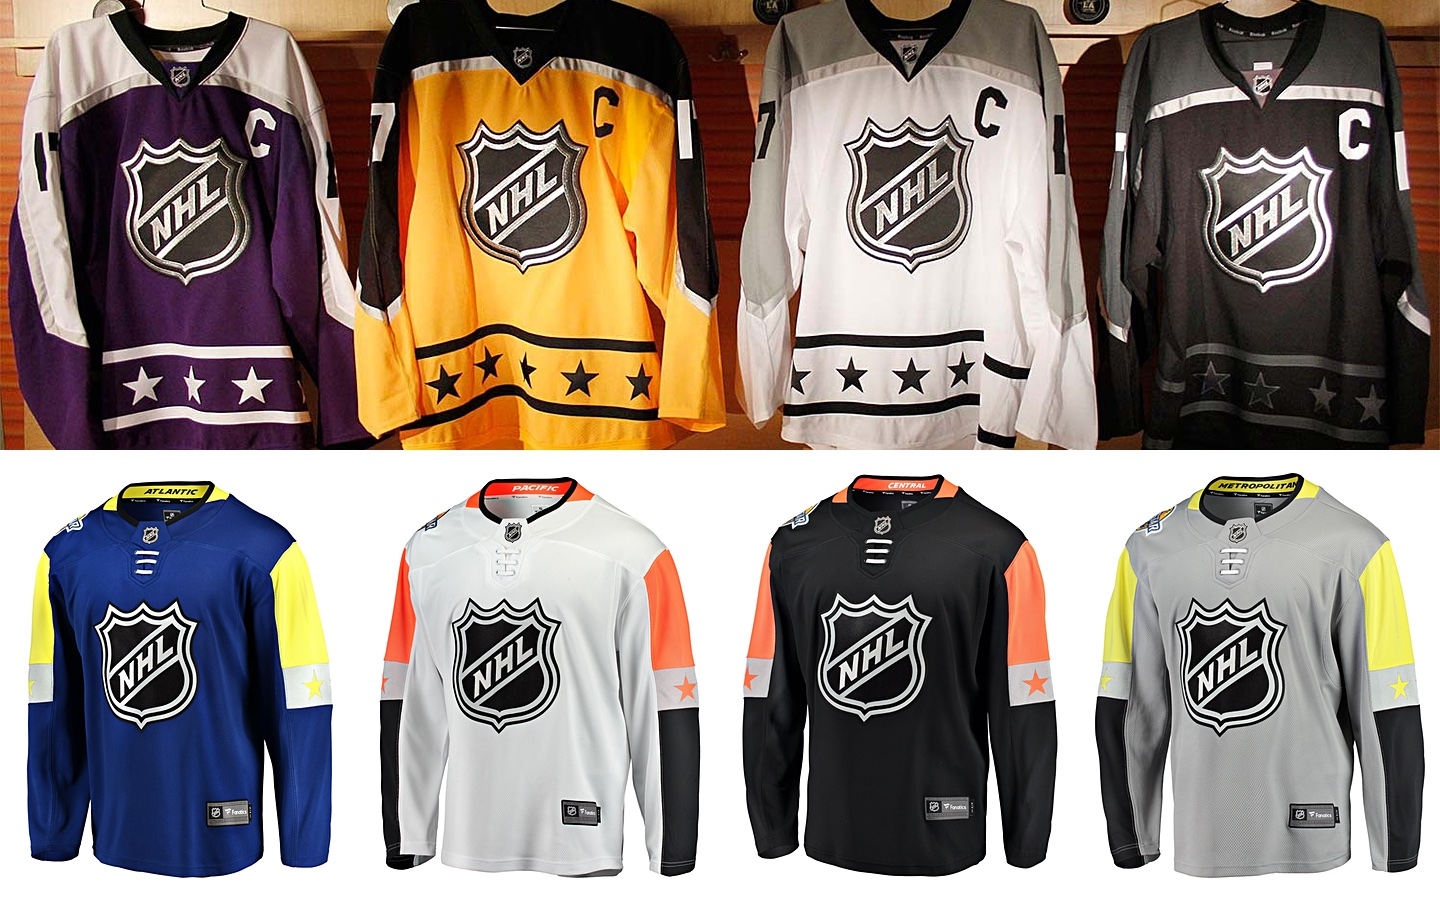 reputable site 0baf1 4963d icethetics.com: When will we see the 2019-20 NHL event jerseys?